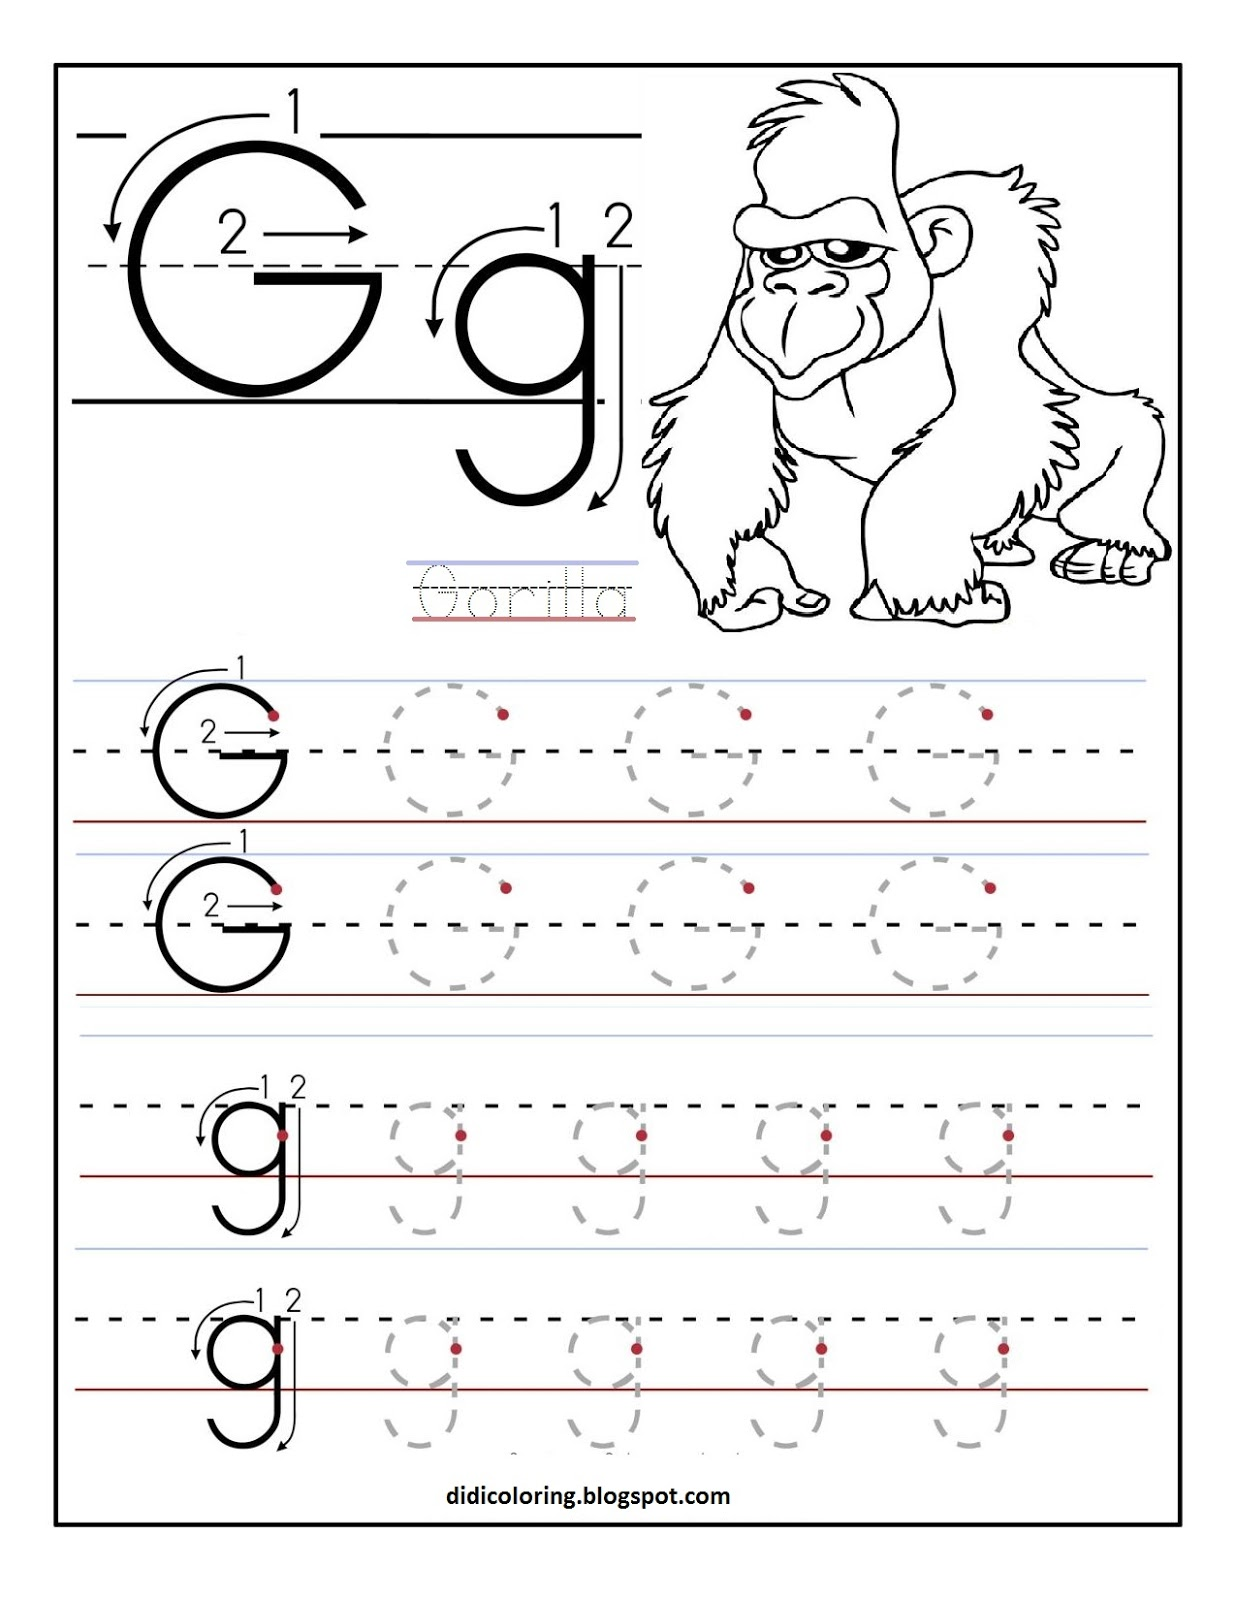 Free printable worksheet letter G for your child to learn and ...